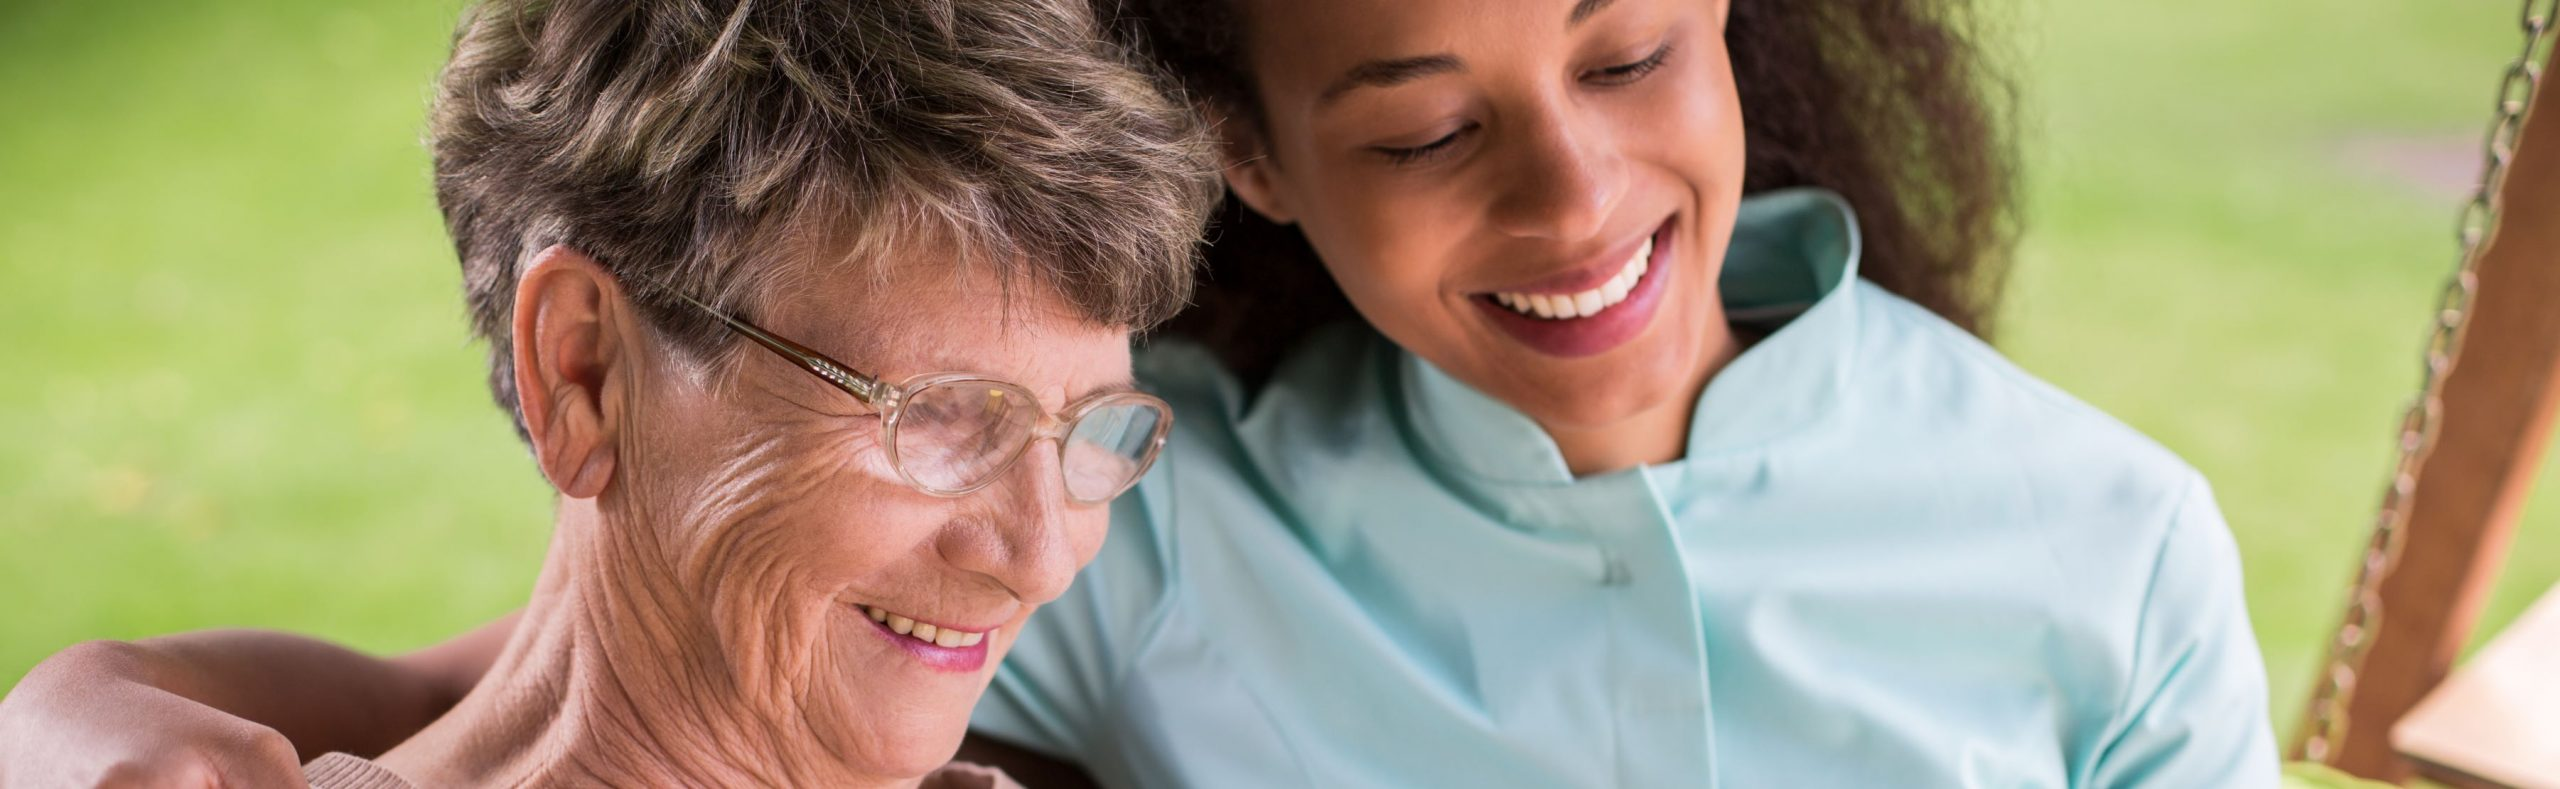 Caregiver assisting a retired person a long-term care facility.